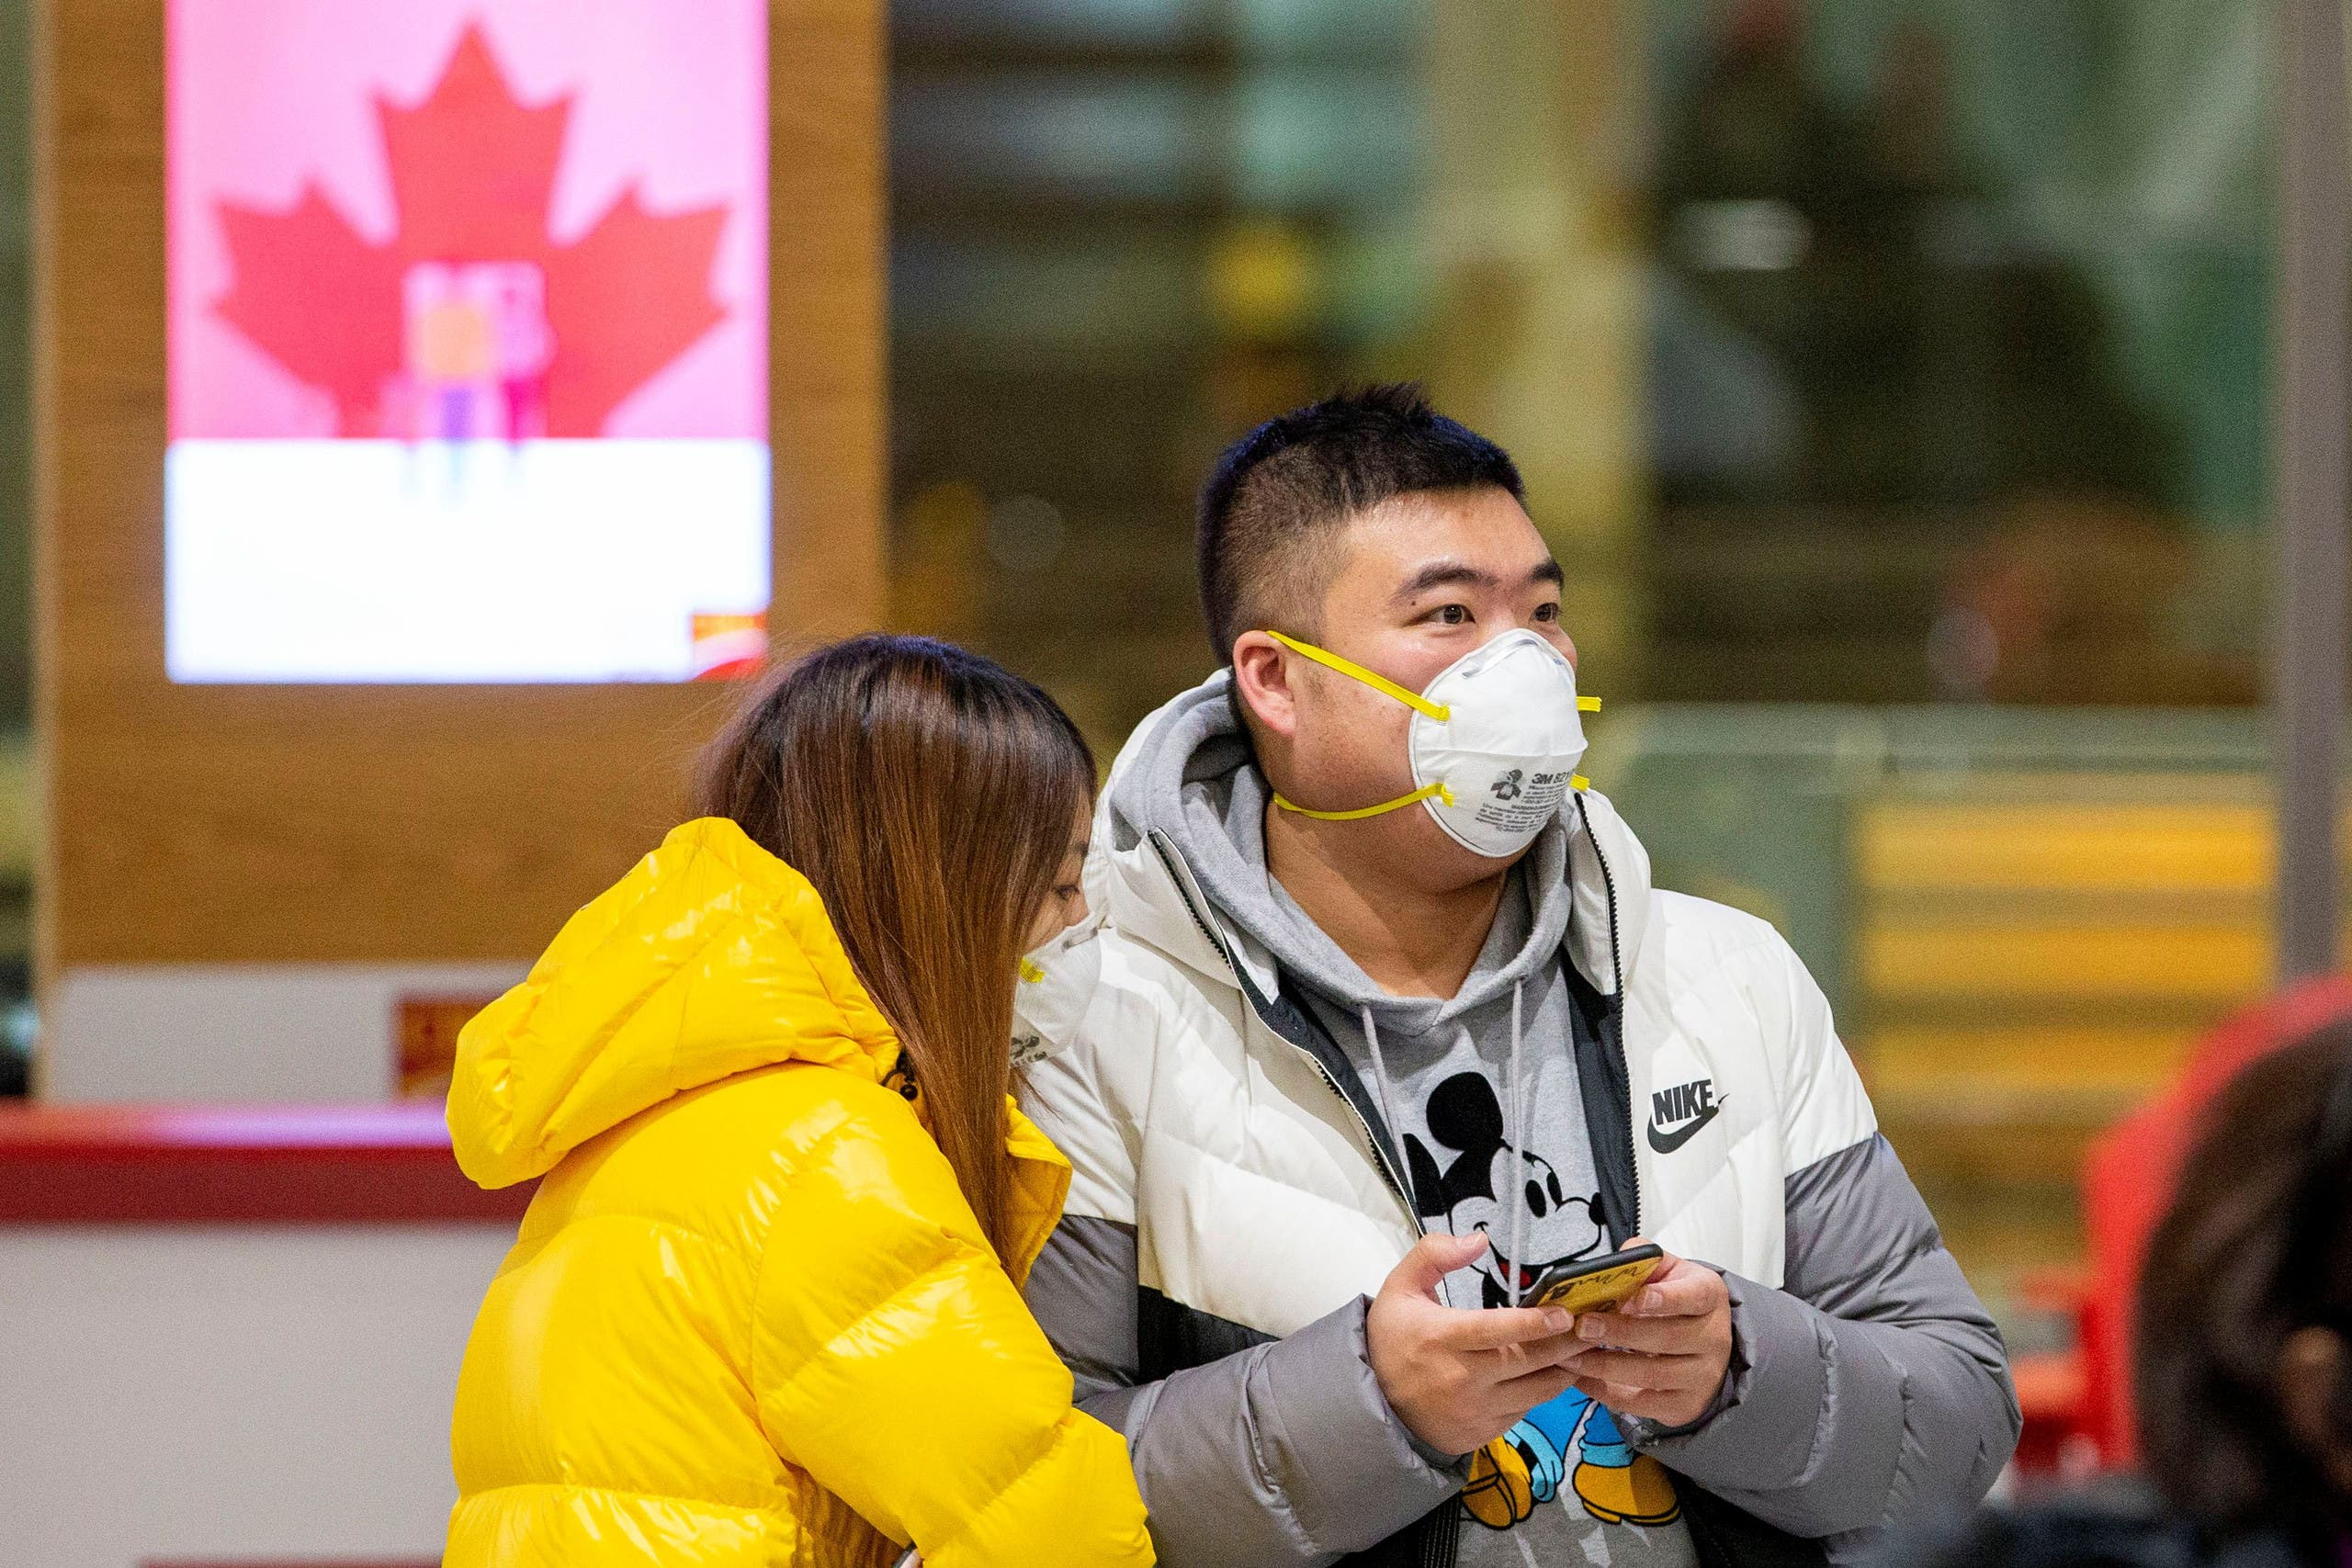 People waiting for passengers wear masks at Pearson airport arrivals, shortly after Toronto Public Health received notification of Canada's first presumptive confirmed case of coronavirus, in Toronto. (Reuters)